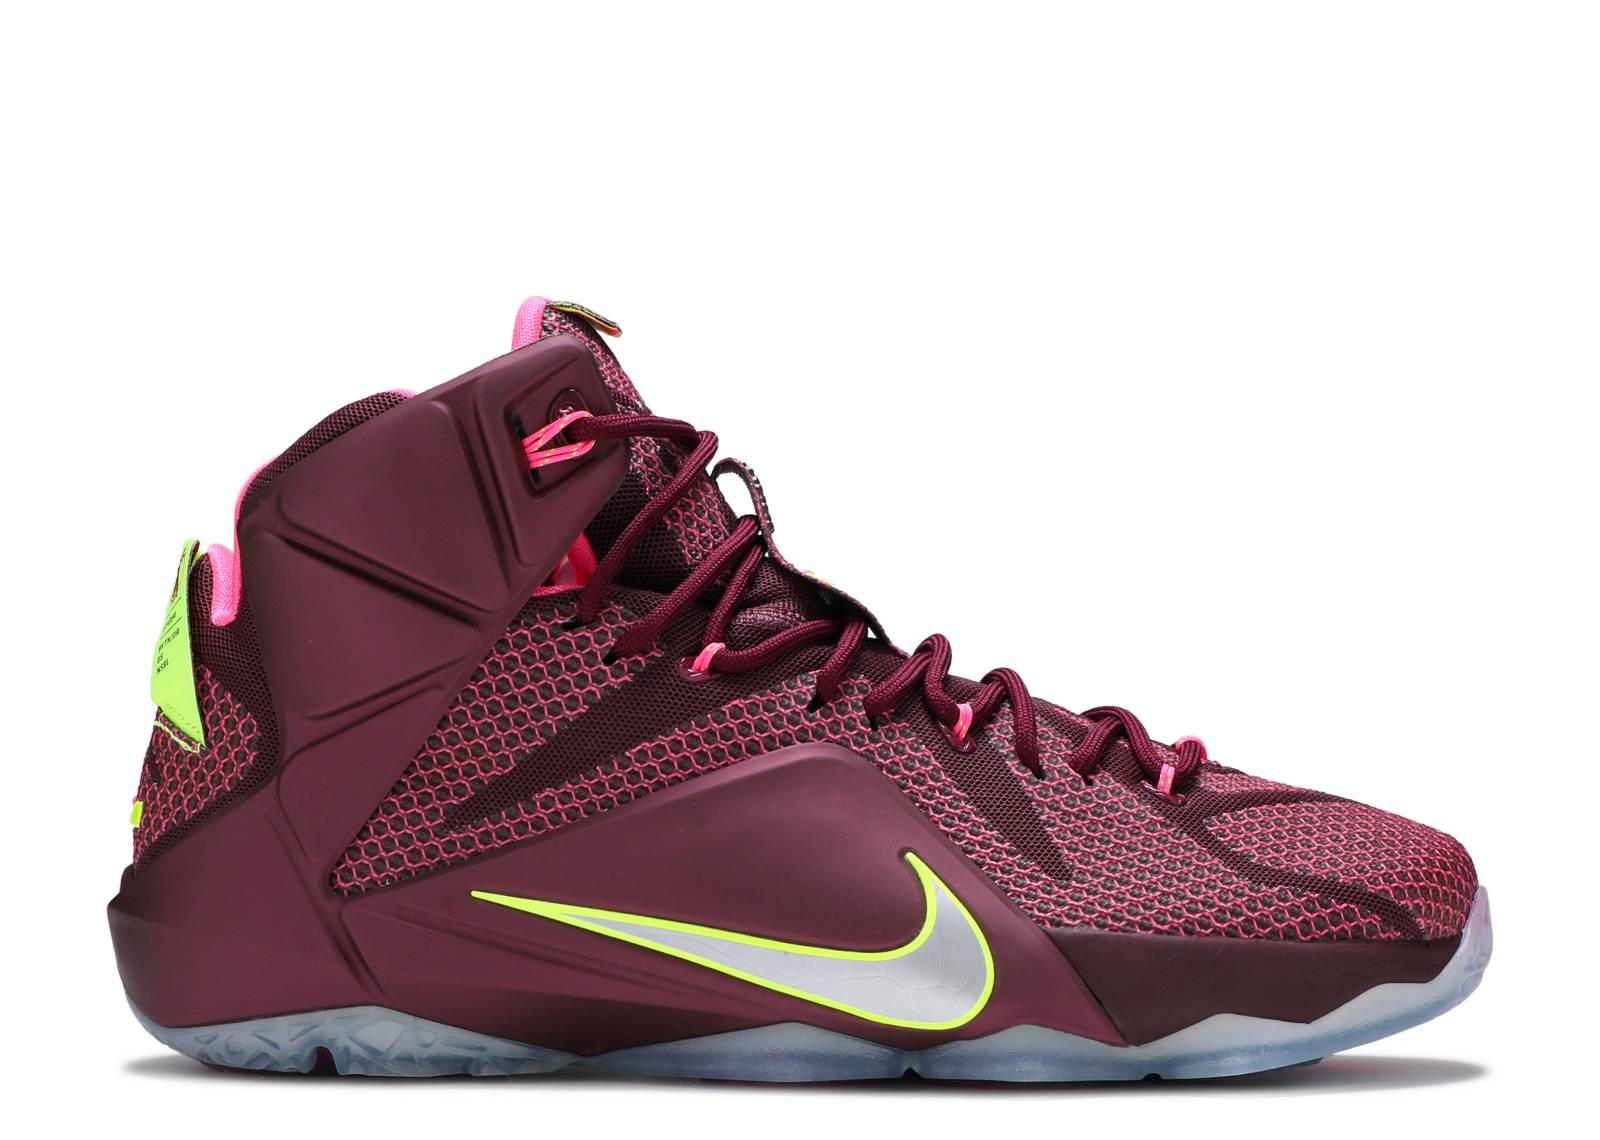 7b1a36eb7d0 Lebron James - Nike Basketball - Nike